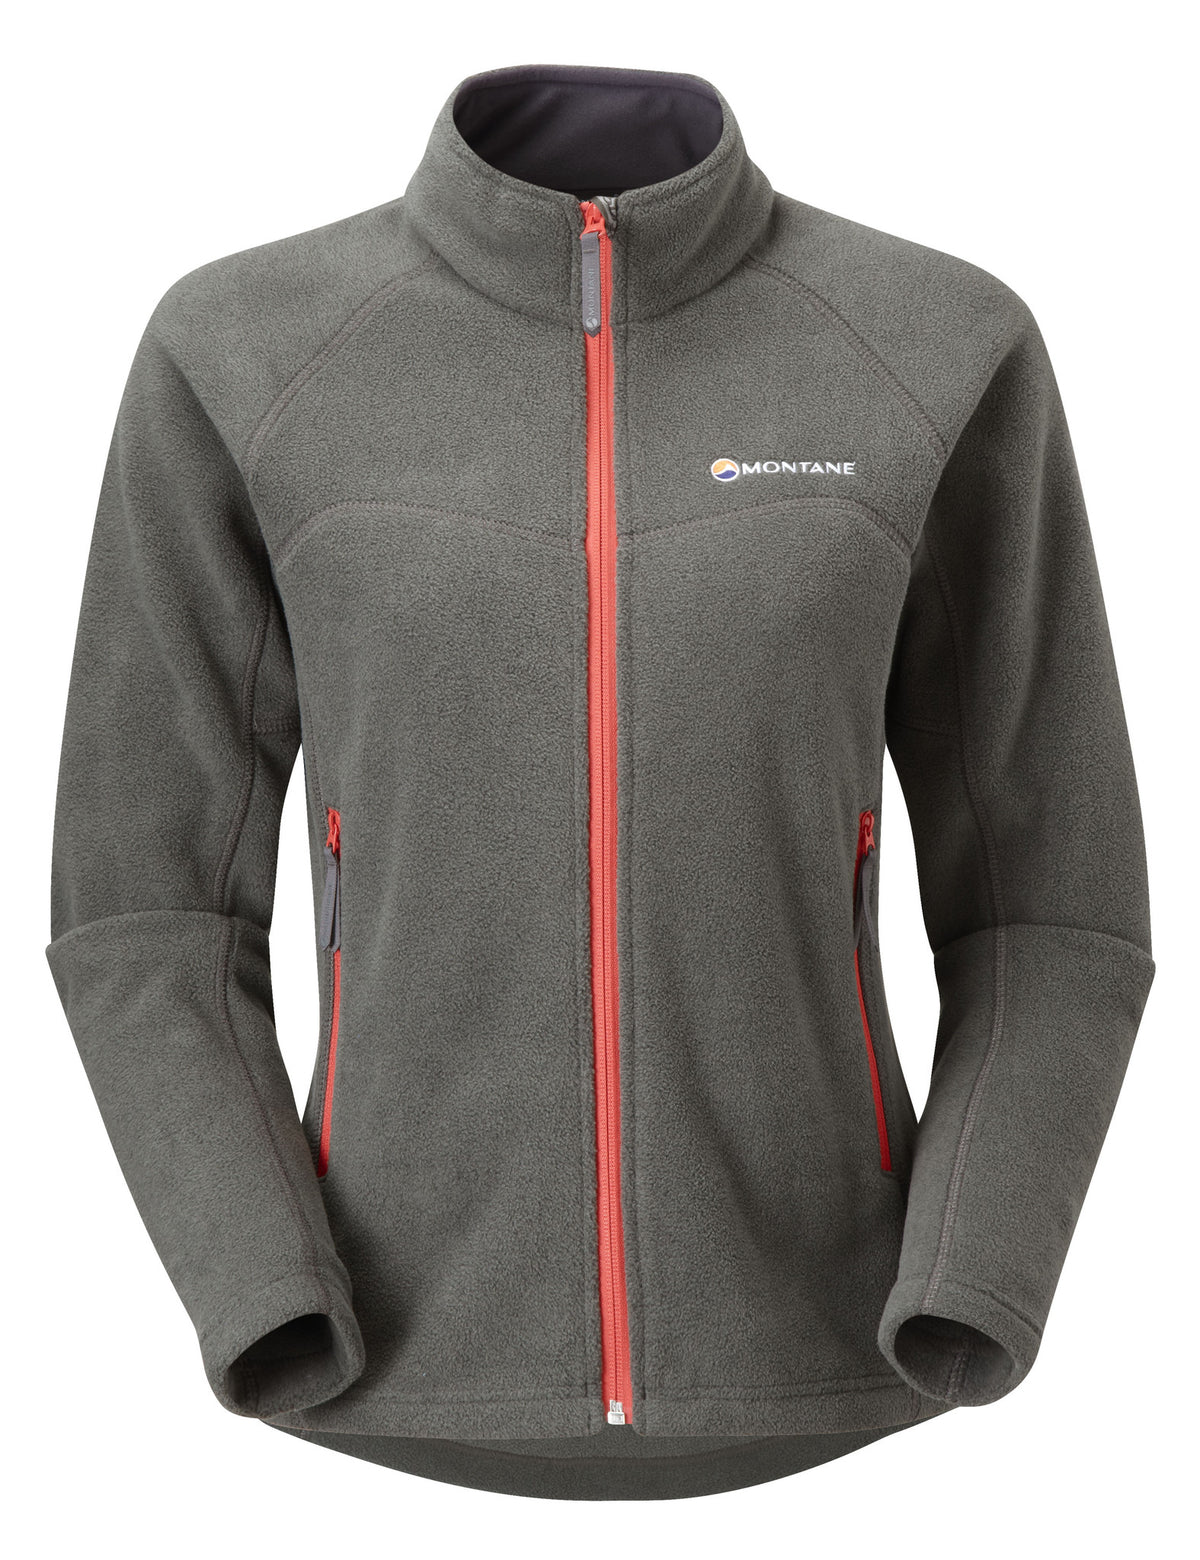 Montane-Women's Snow Storm Jacket-Womens Insulation & Down-Shadow-XS-Gearaholic.com.sg